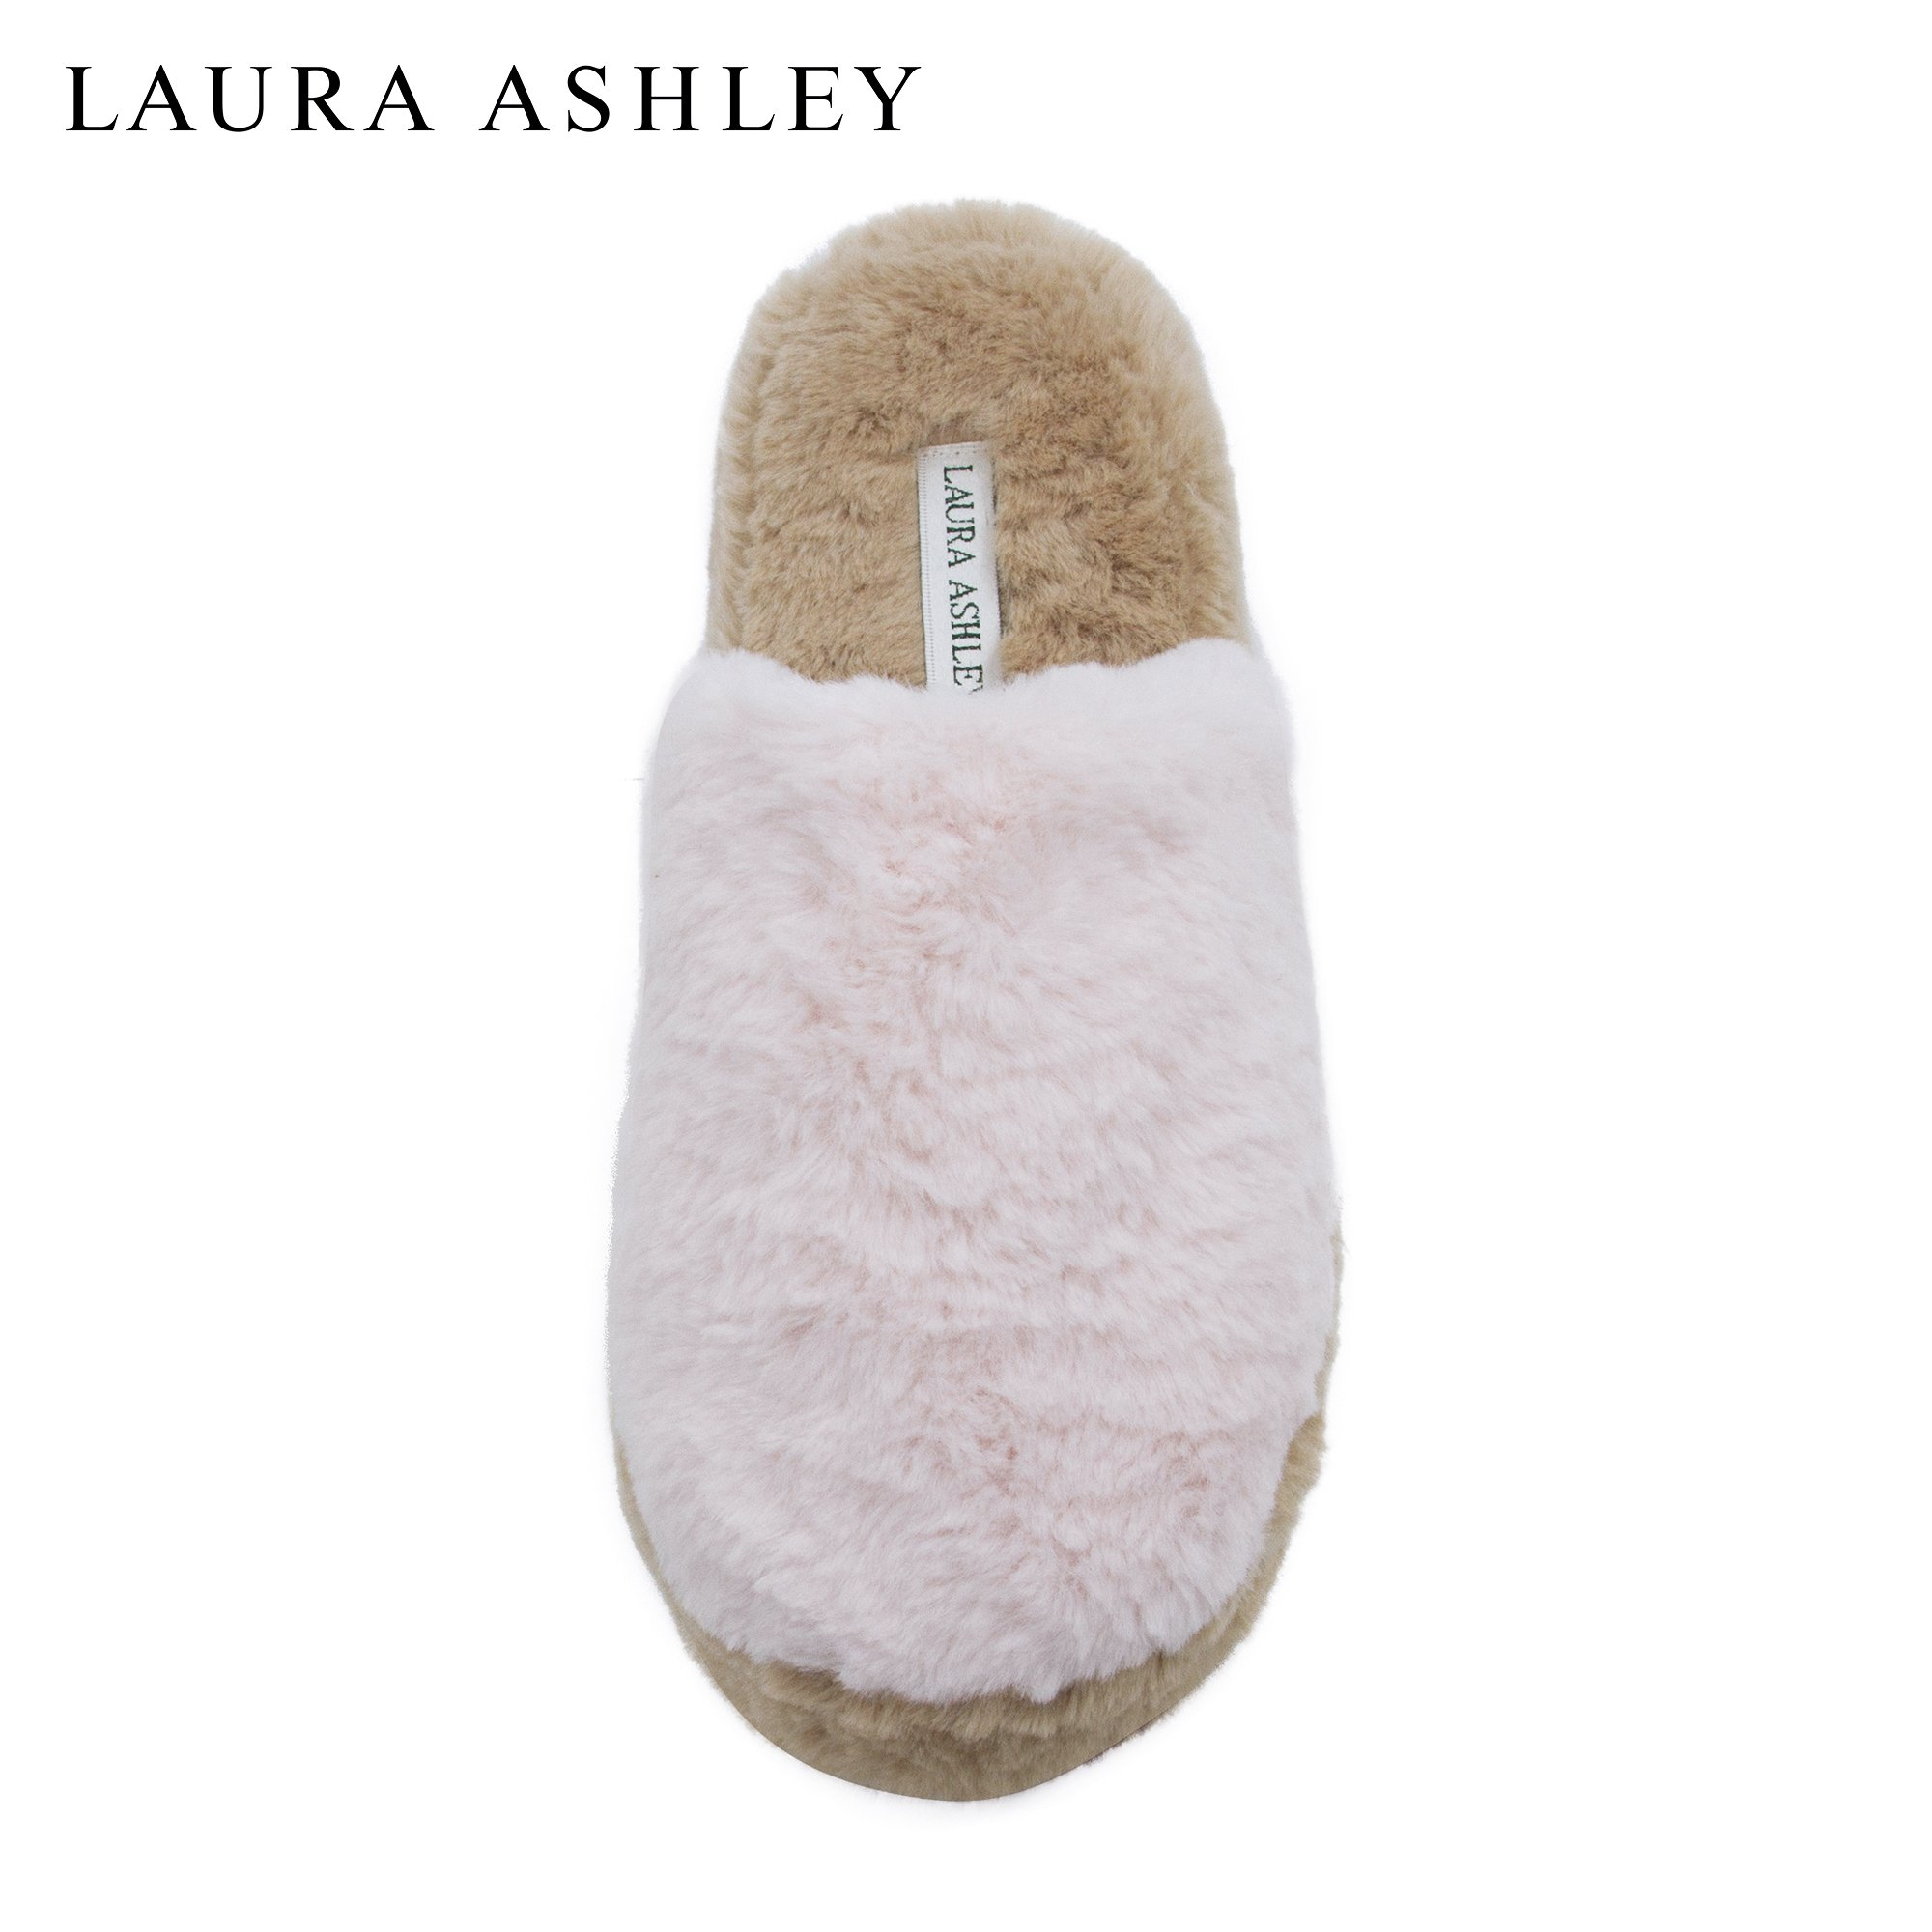 Laura Ashley Ladies Plush Pillow Cushioned Wedge Slippers, Pink Tan/Pink, X Large